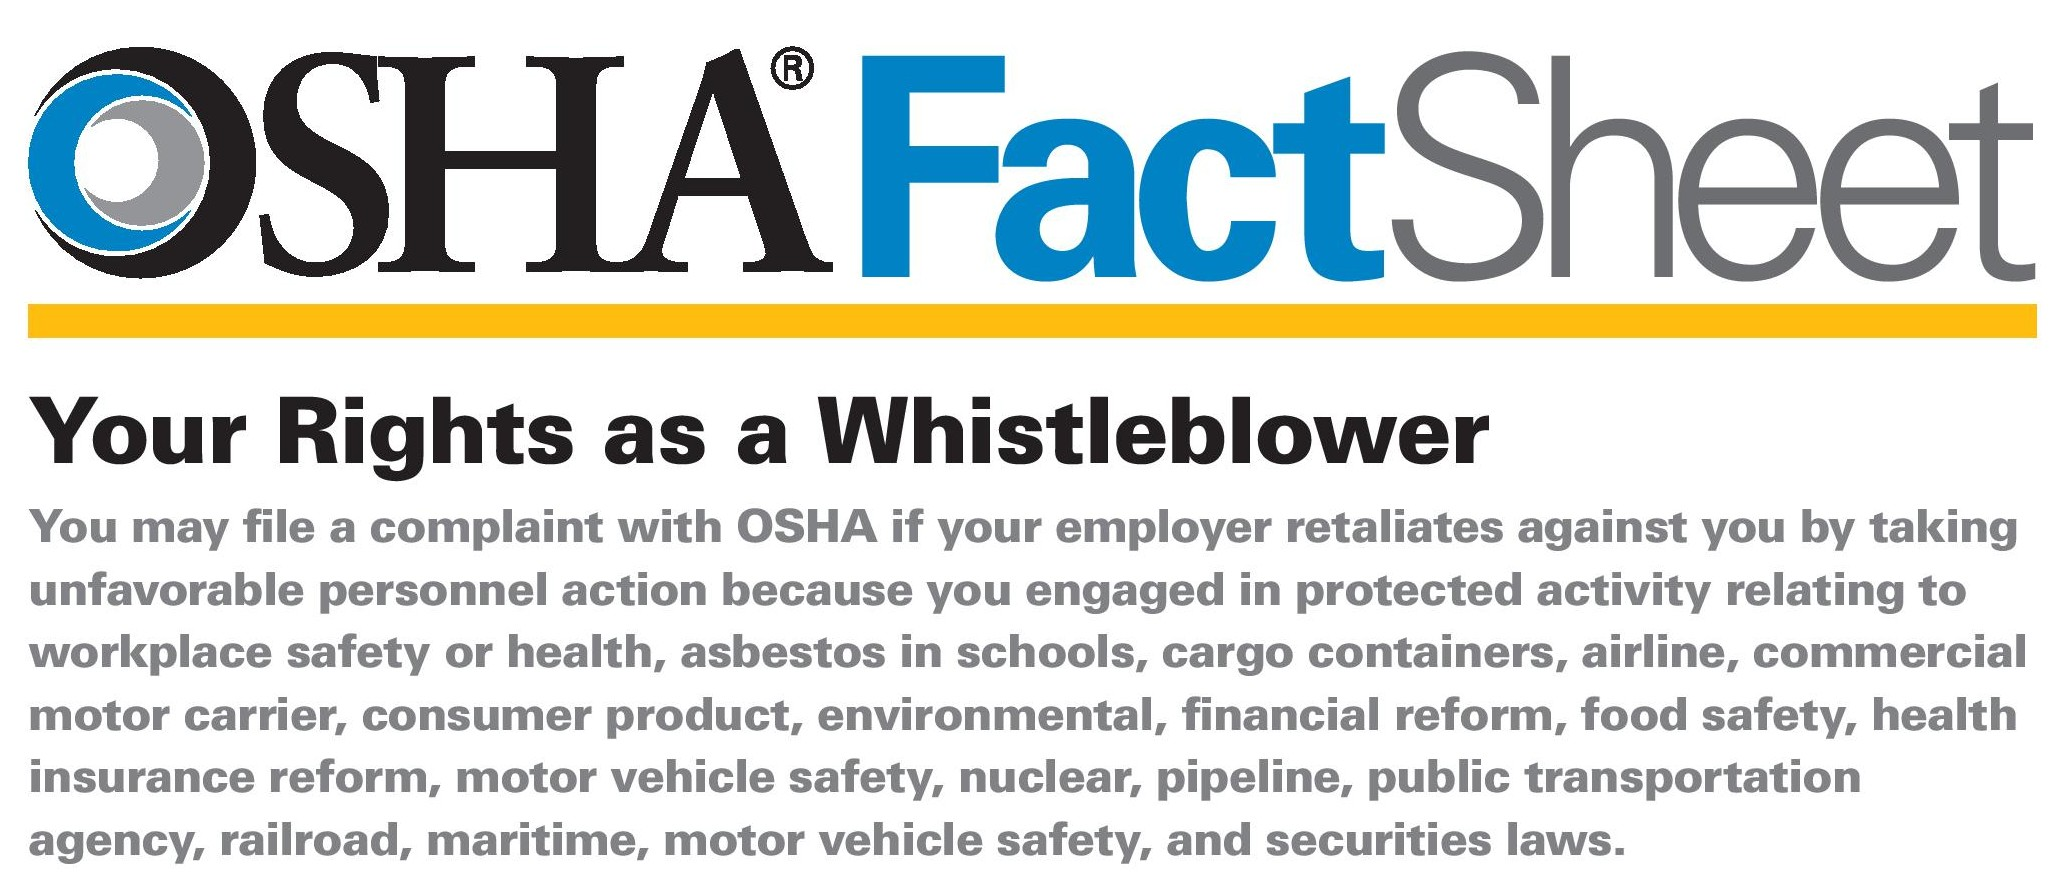 osha-whistleblower_rights-page-001-e1375884528818